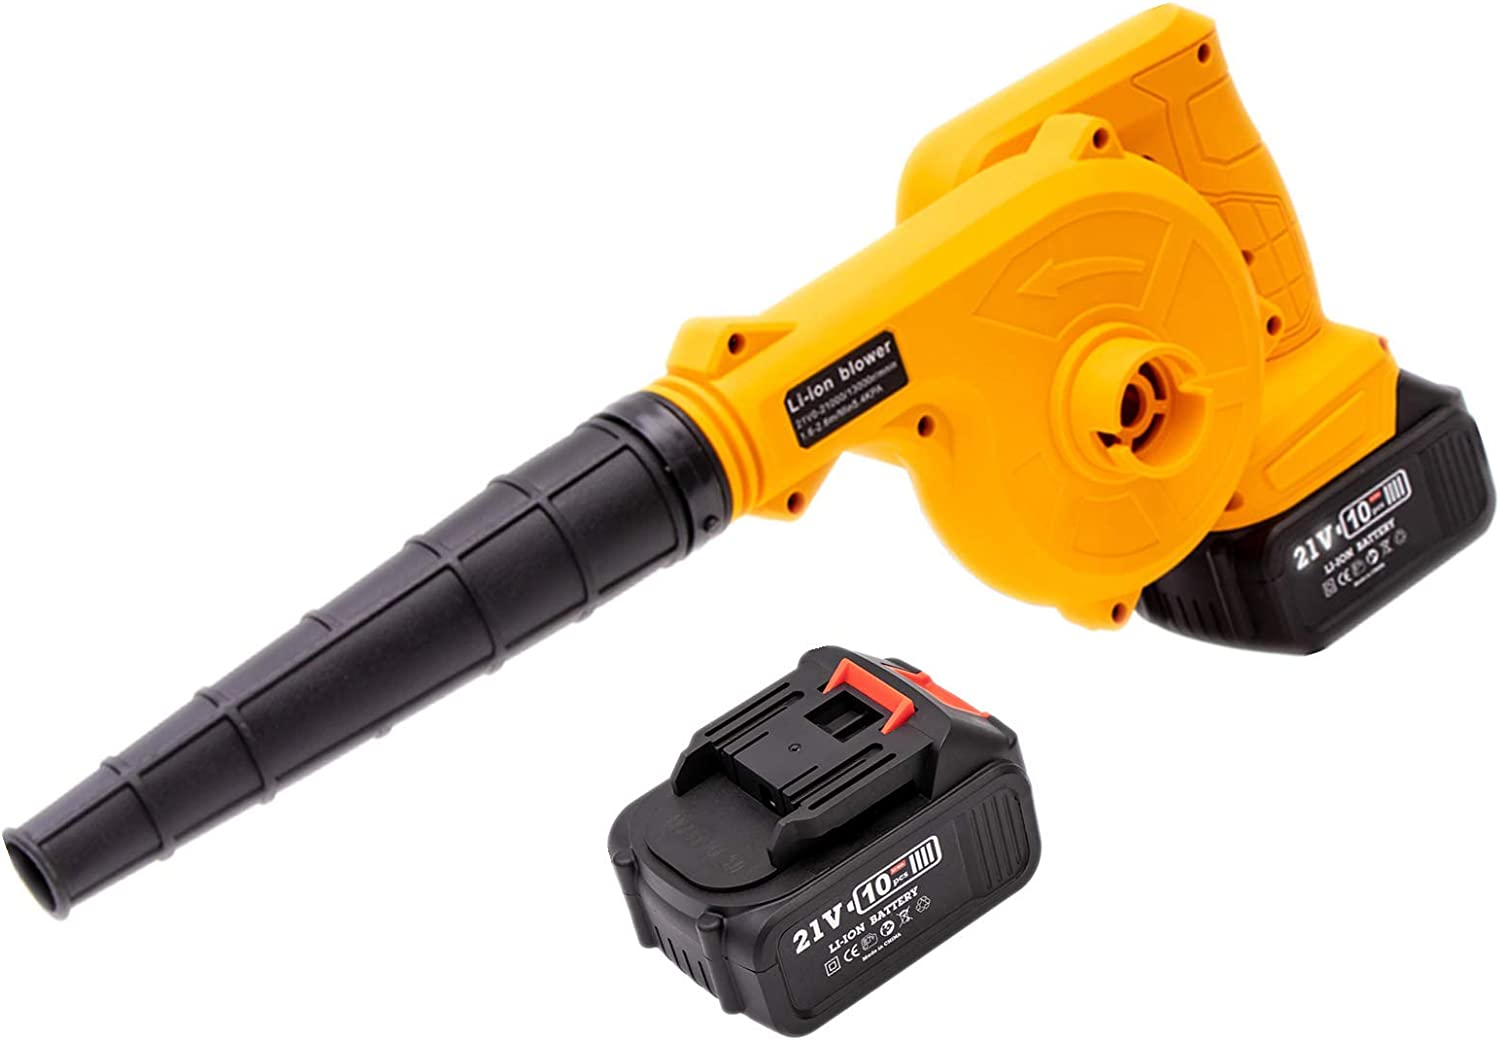 Leaf Blower Vacuum Slvoefi 21V 2 in 1 Leaf Blower / Vacuum Cordless with Battery & Charger, Electric Leaf Blower for Blowing Leaves, Snow Debris and Dust